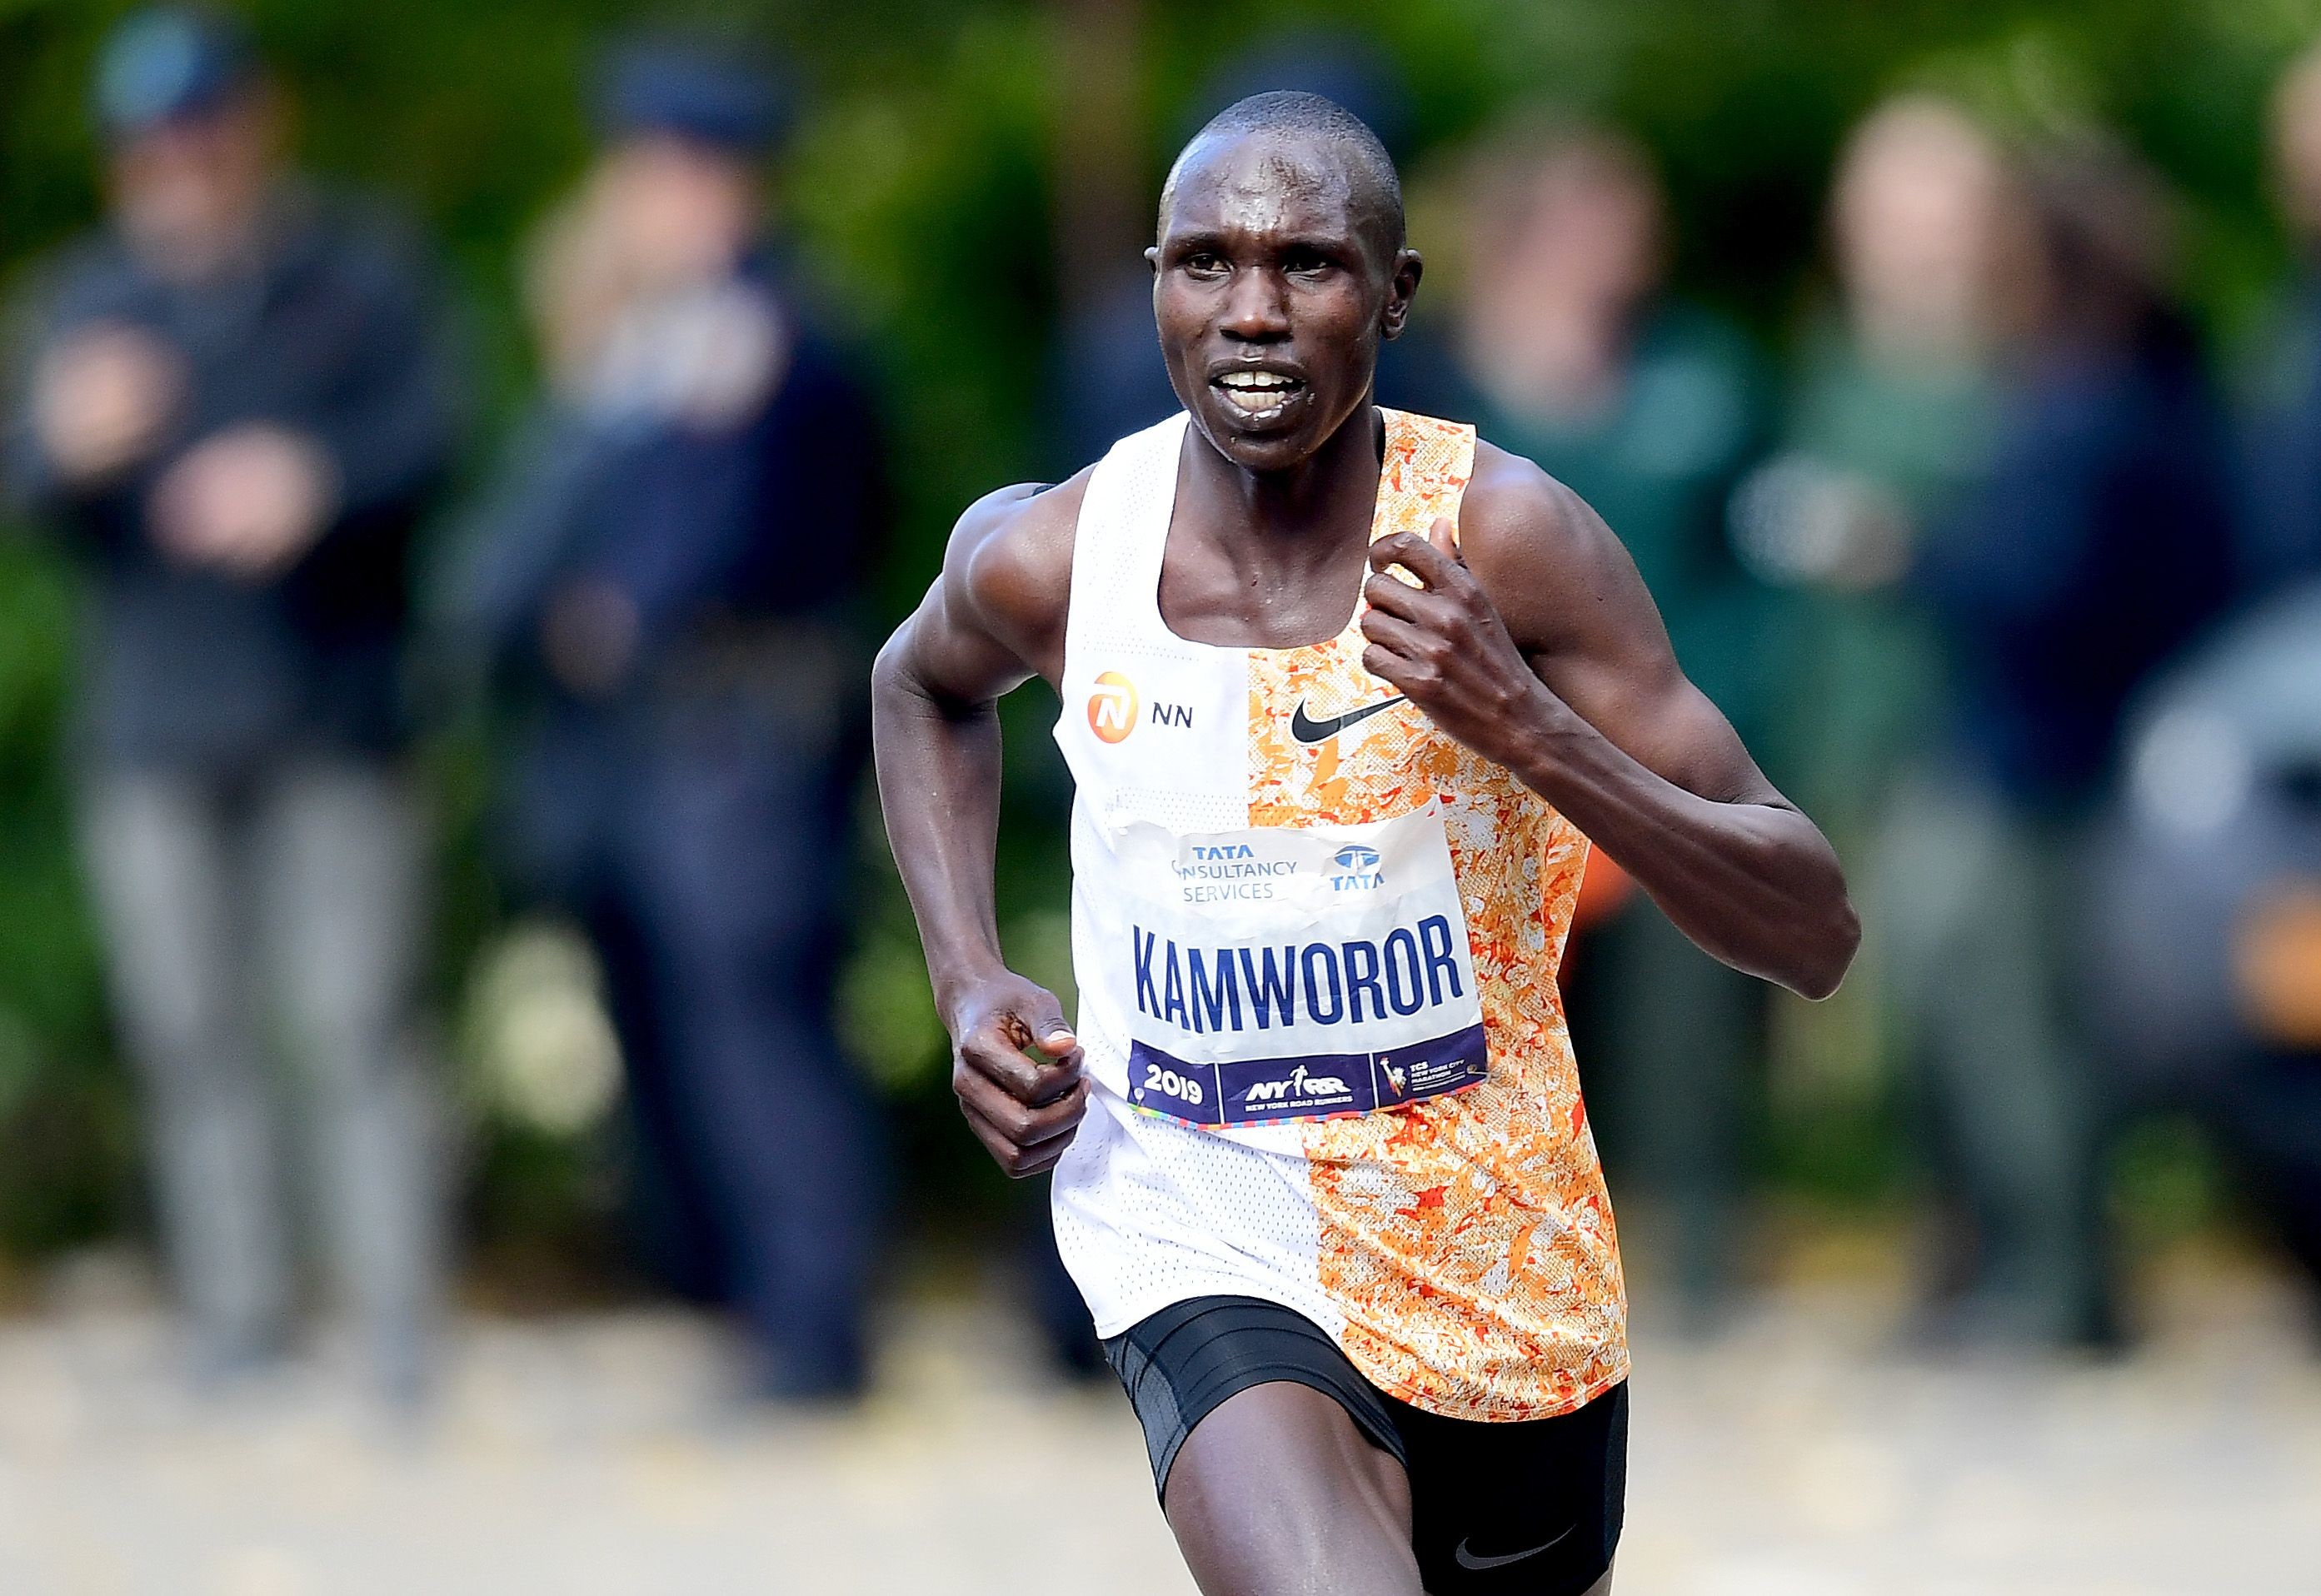 Geoffrey Kamworor's dream of sealing a fourth World Half Marathon crown is still alive despite coronavirus pandemic that has disrupted sports activities globally